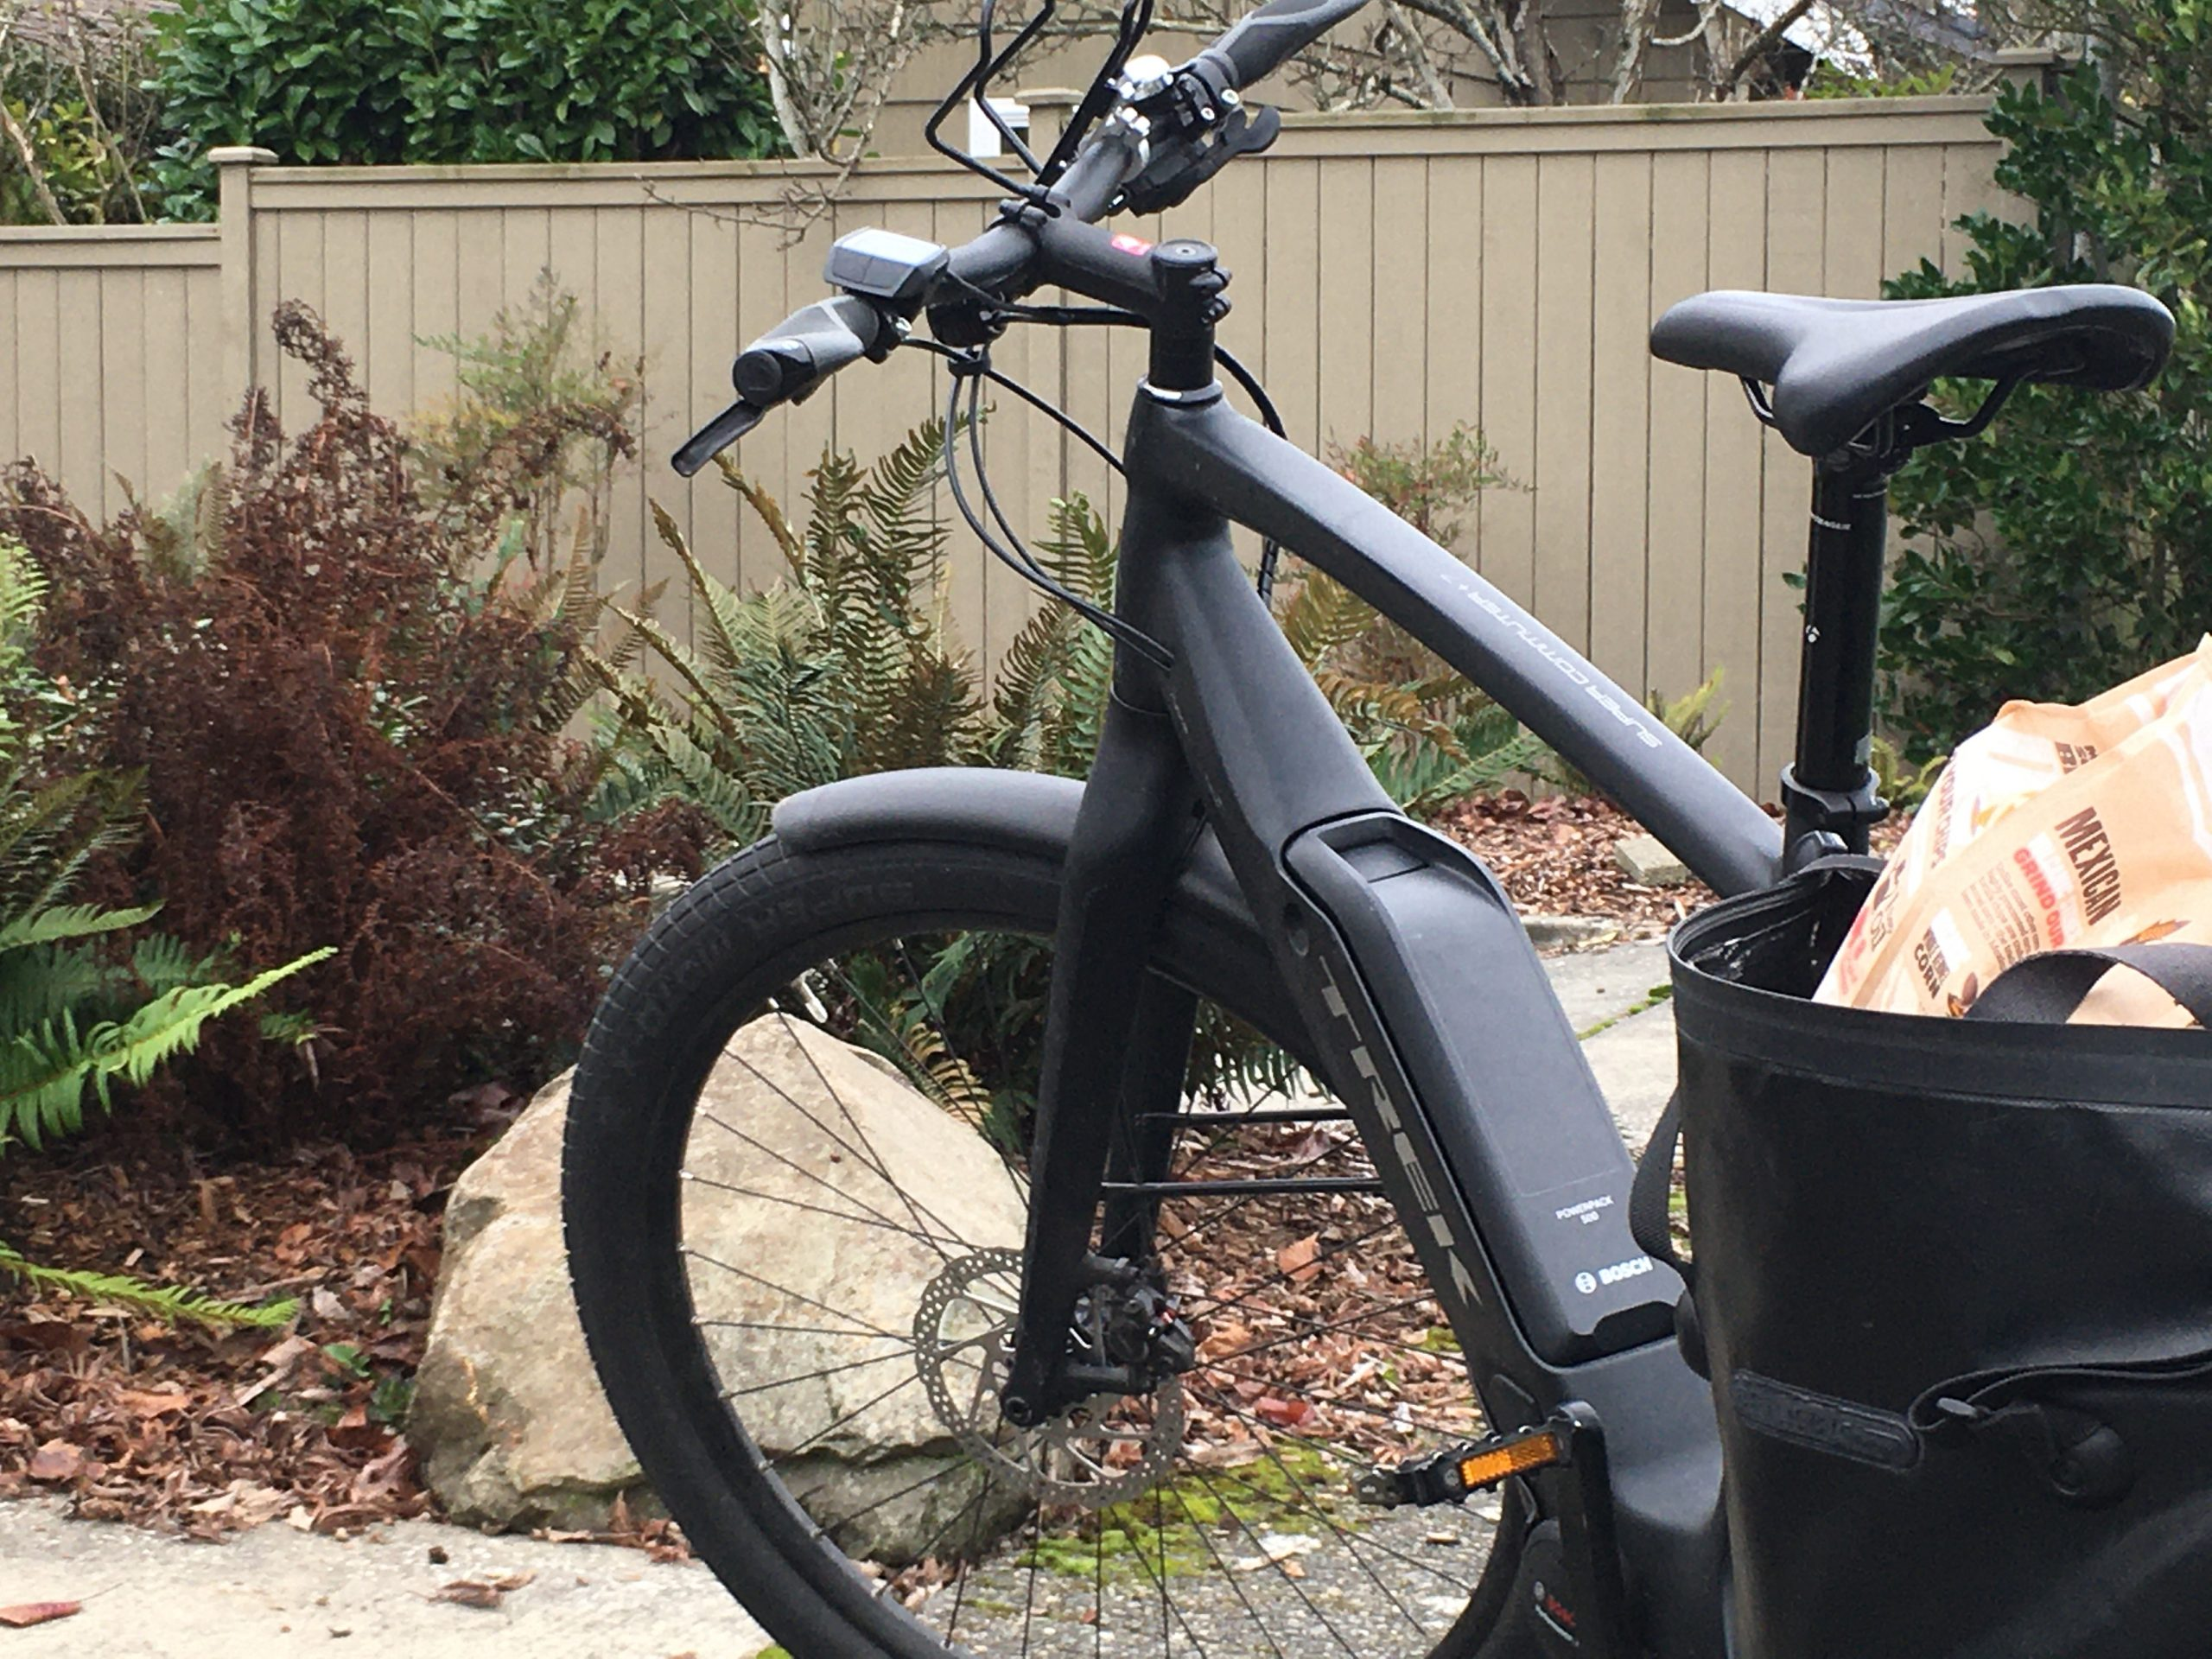 Black electric bike with groceries in back pannier parked in front of house with garden.